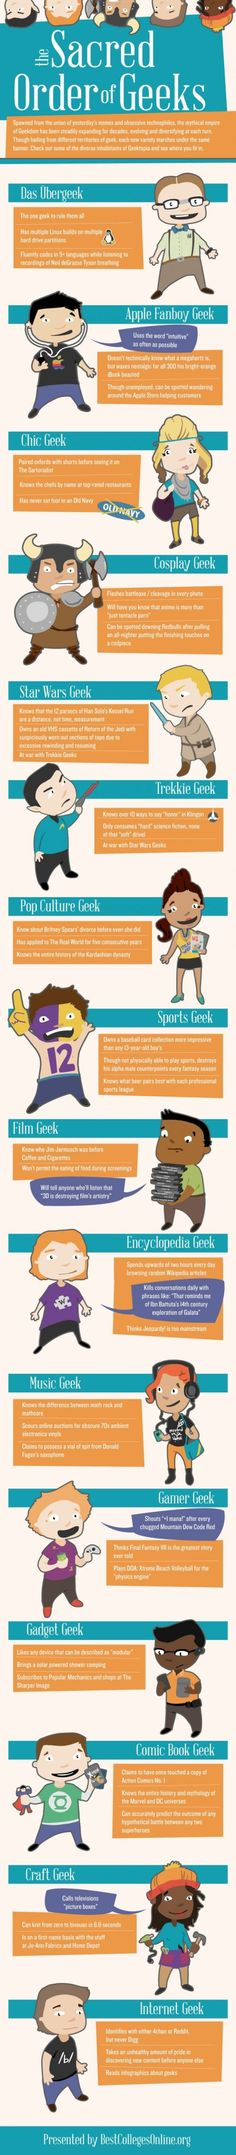 The Sacred Order of Geeks #infographic